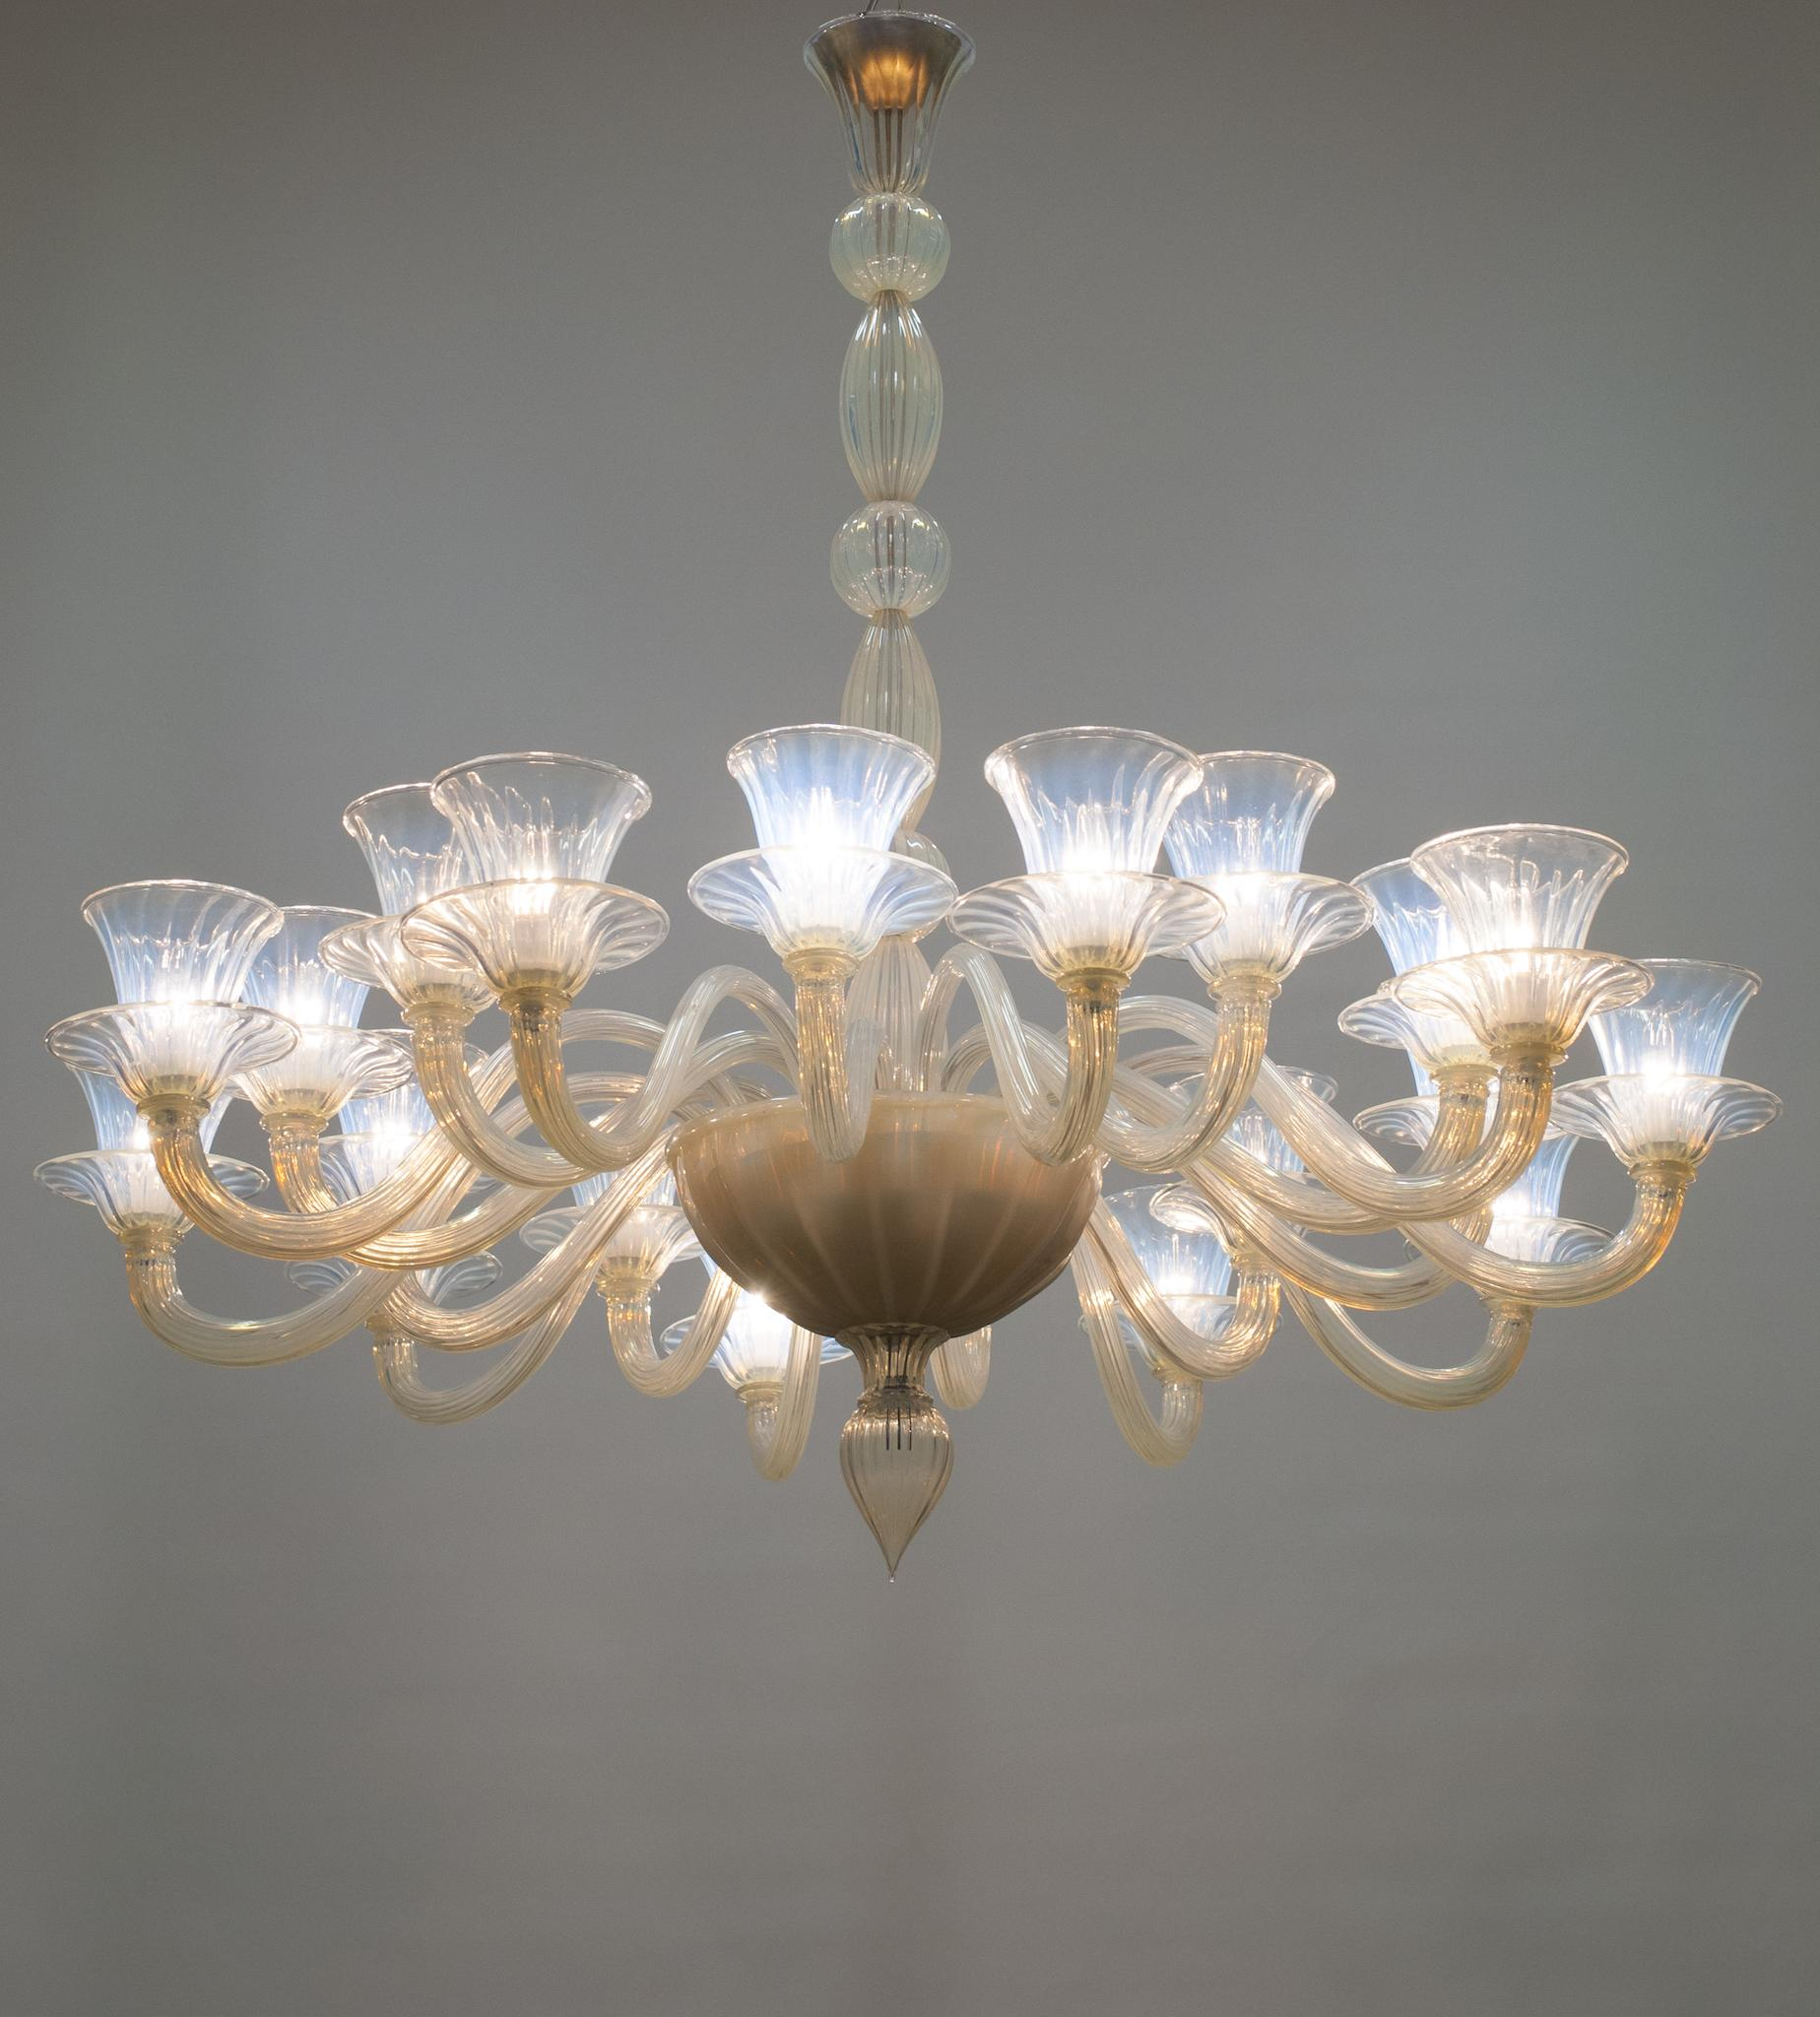 Italian Opaline Chandelier In The Style Of Formia Circa